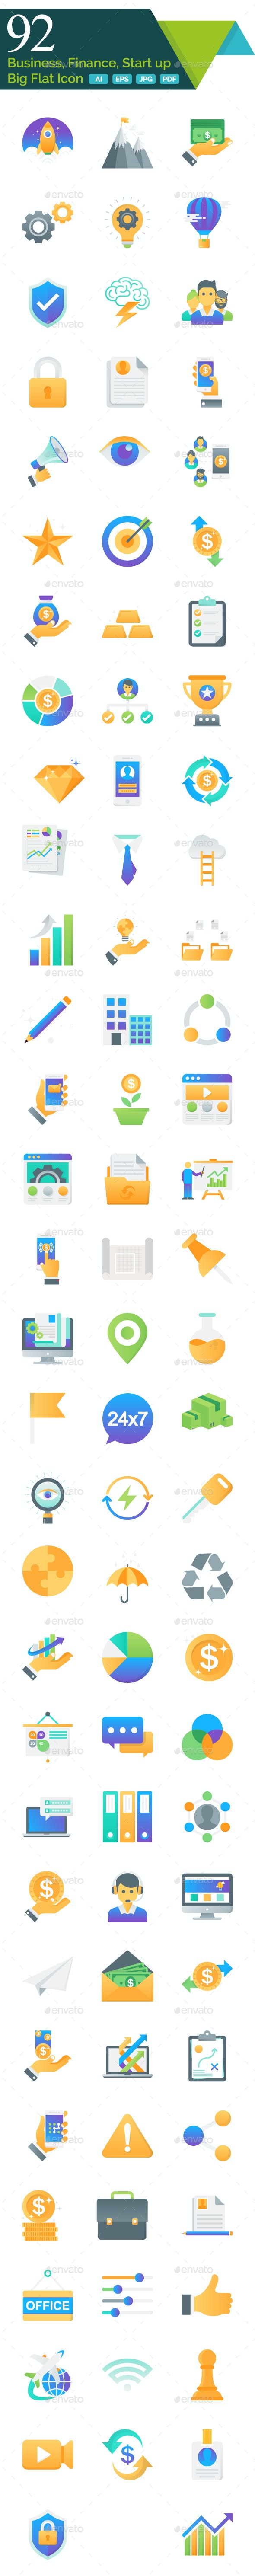 Business, Finance and Start up Big Flat Icon - Business Icons